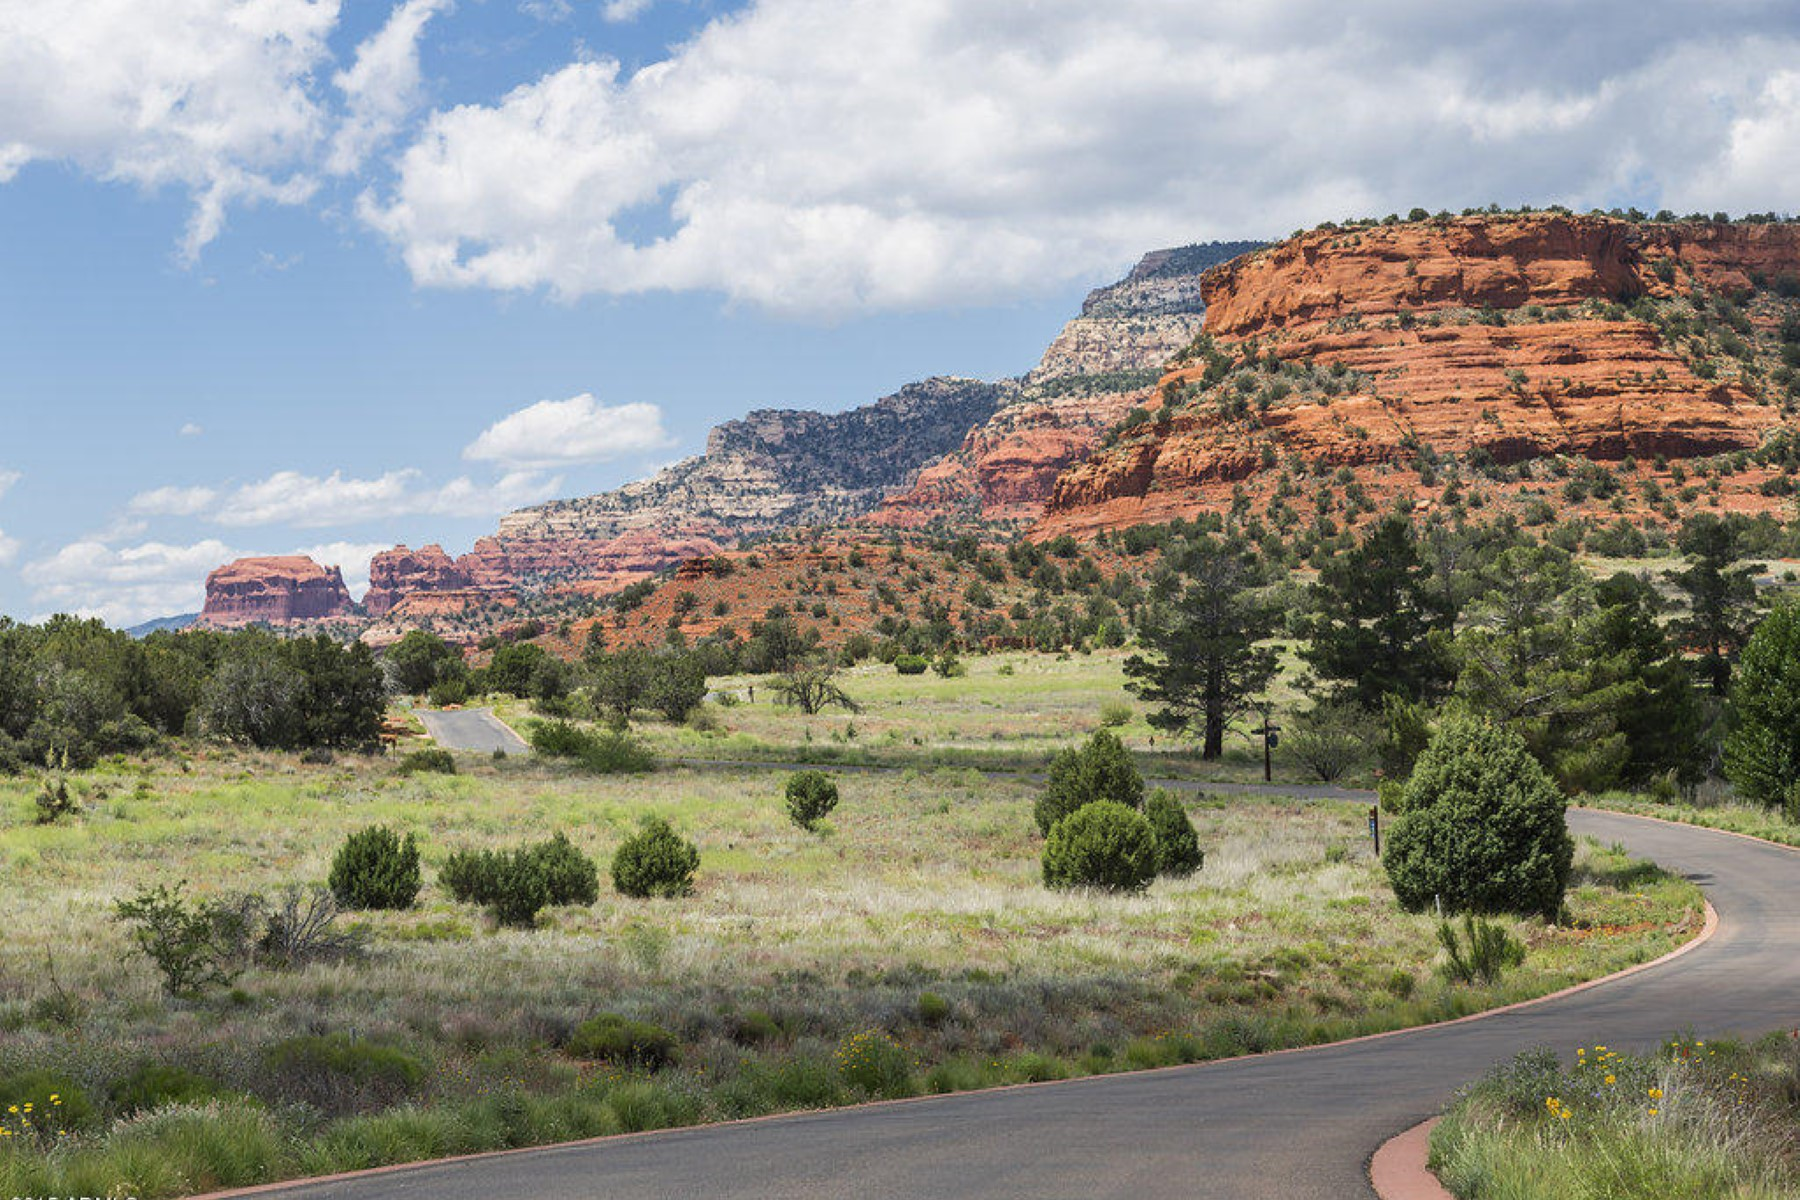 Land for Sale at Aerie 28- with lovely level lot with water and red rock views. 370 Aerie RD 28 Sedona, Arizona 86336 United States